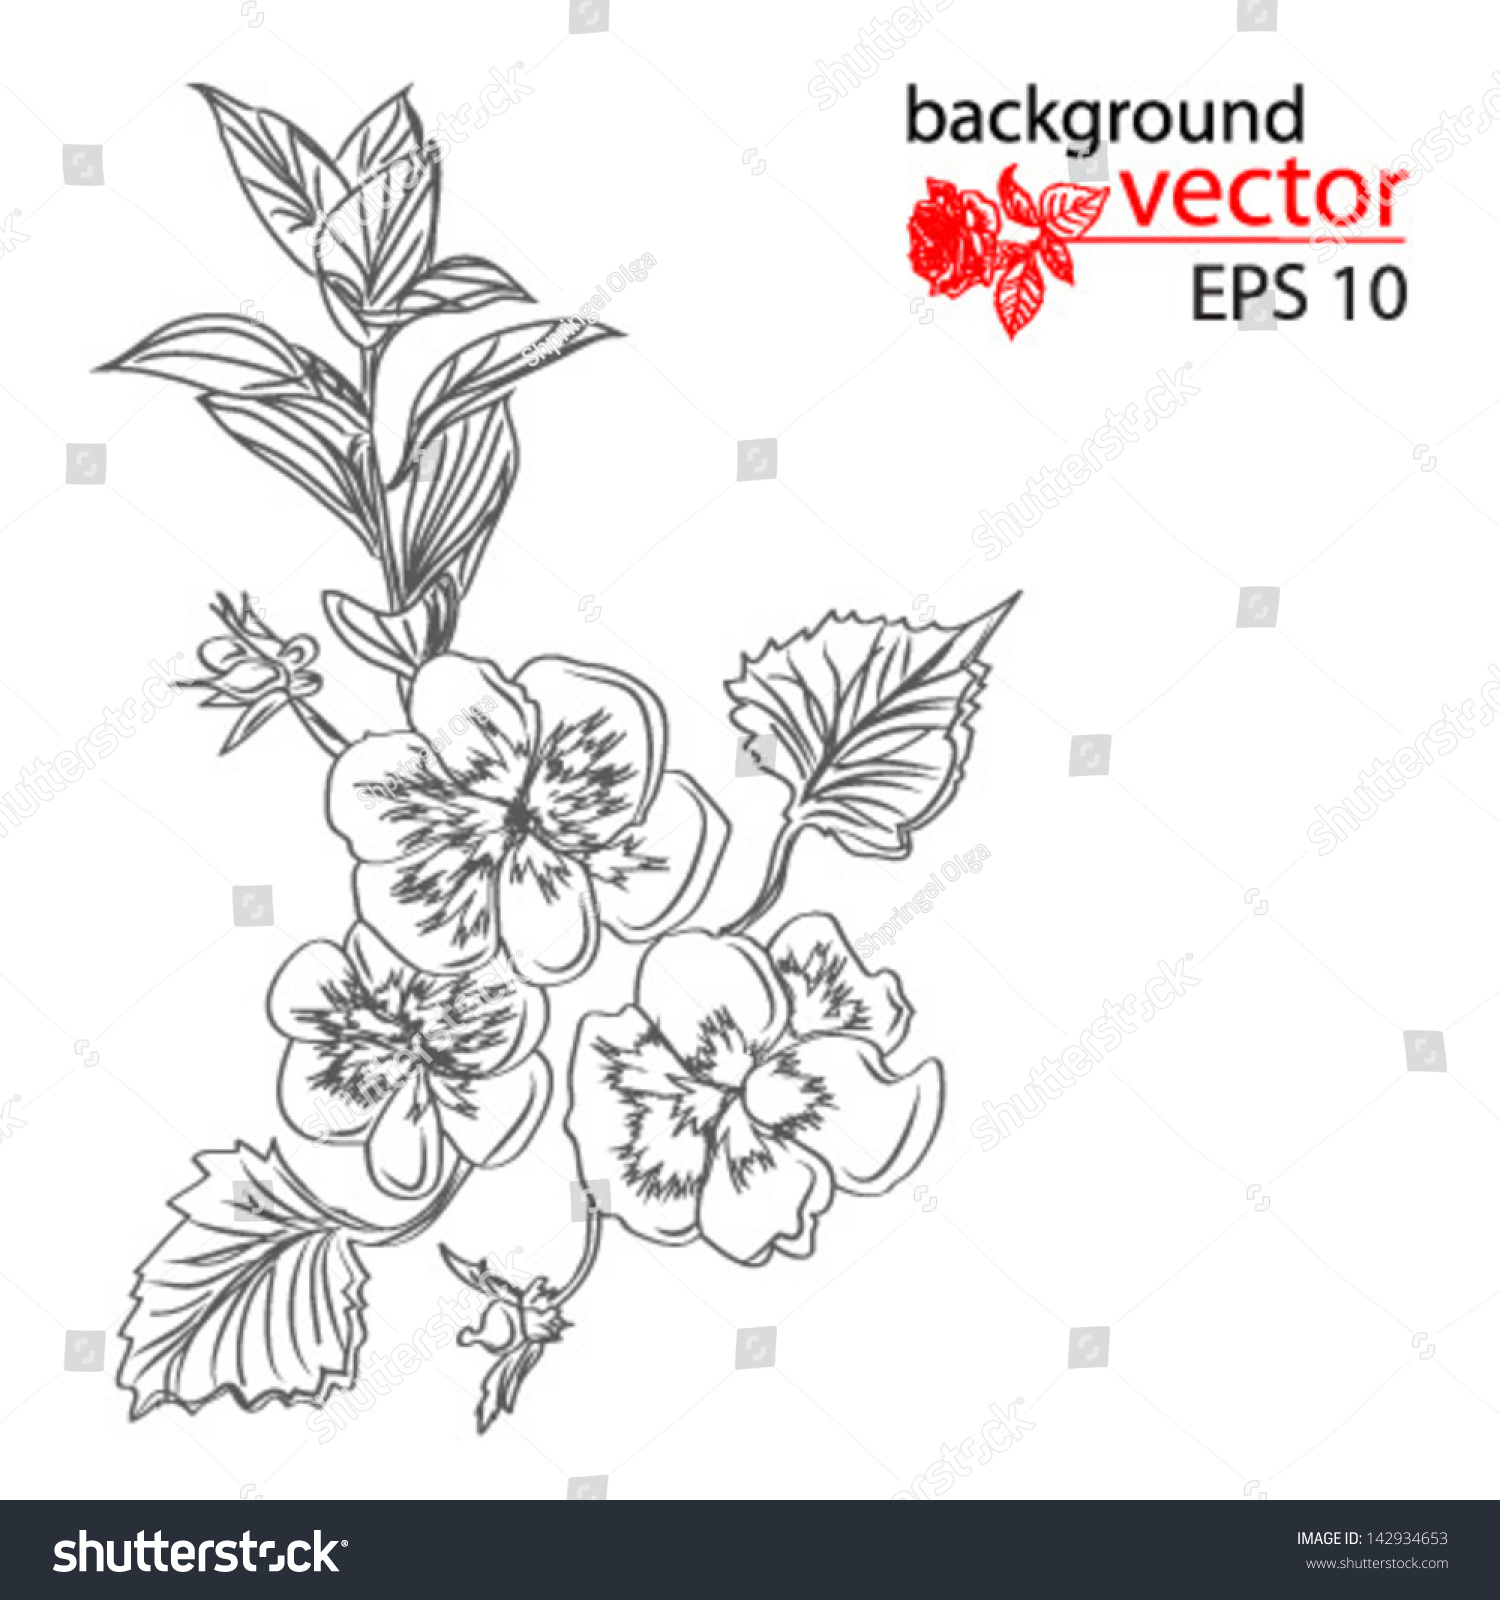 Spiegel Tattoo Black White Tattoo Sketch Bouquet Flower Stock Vector Royalty